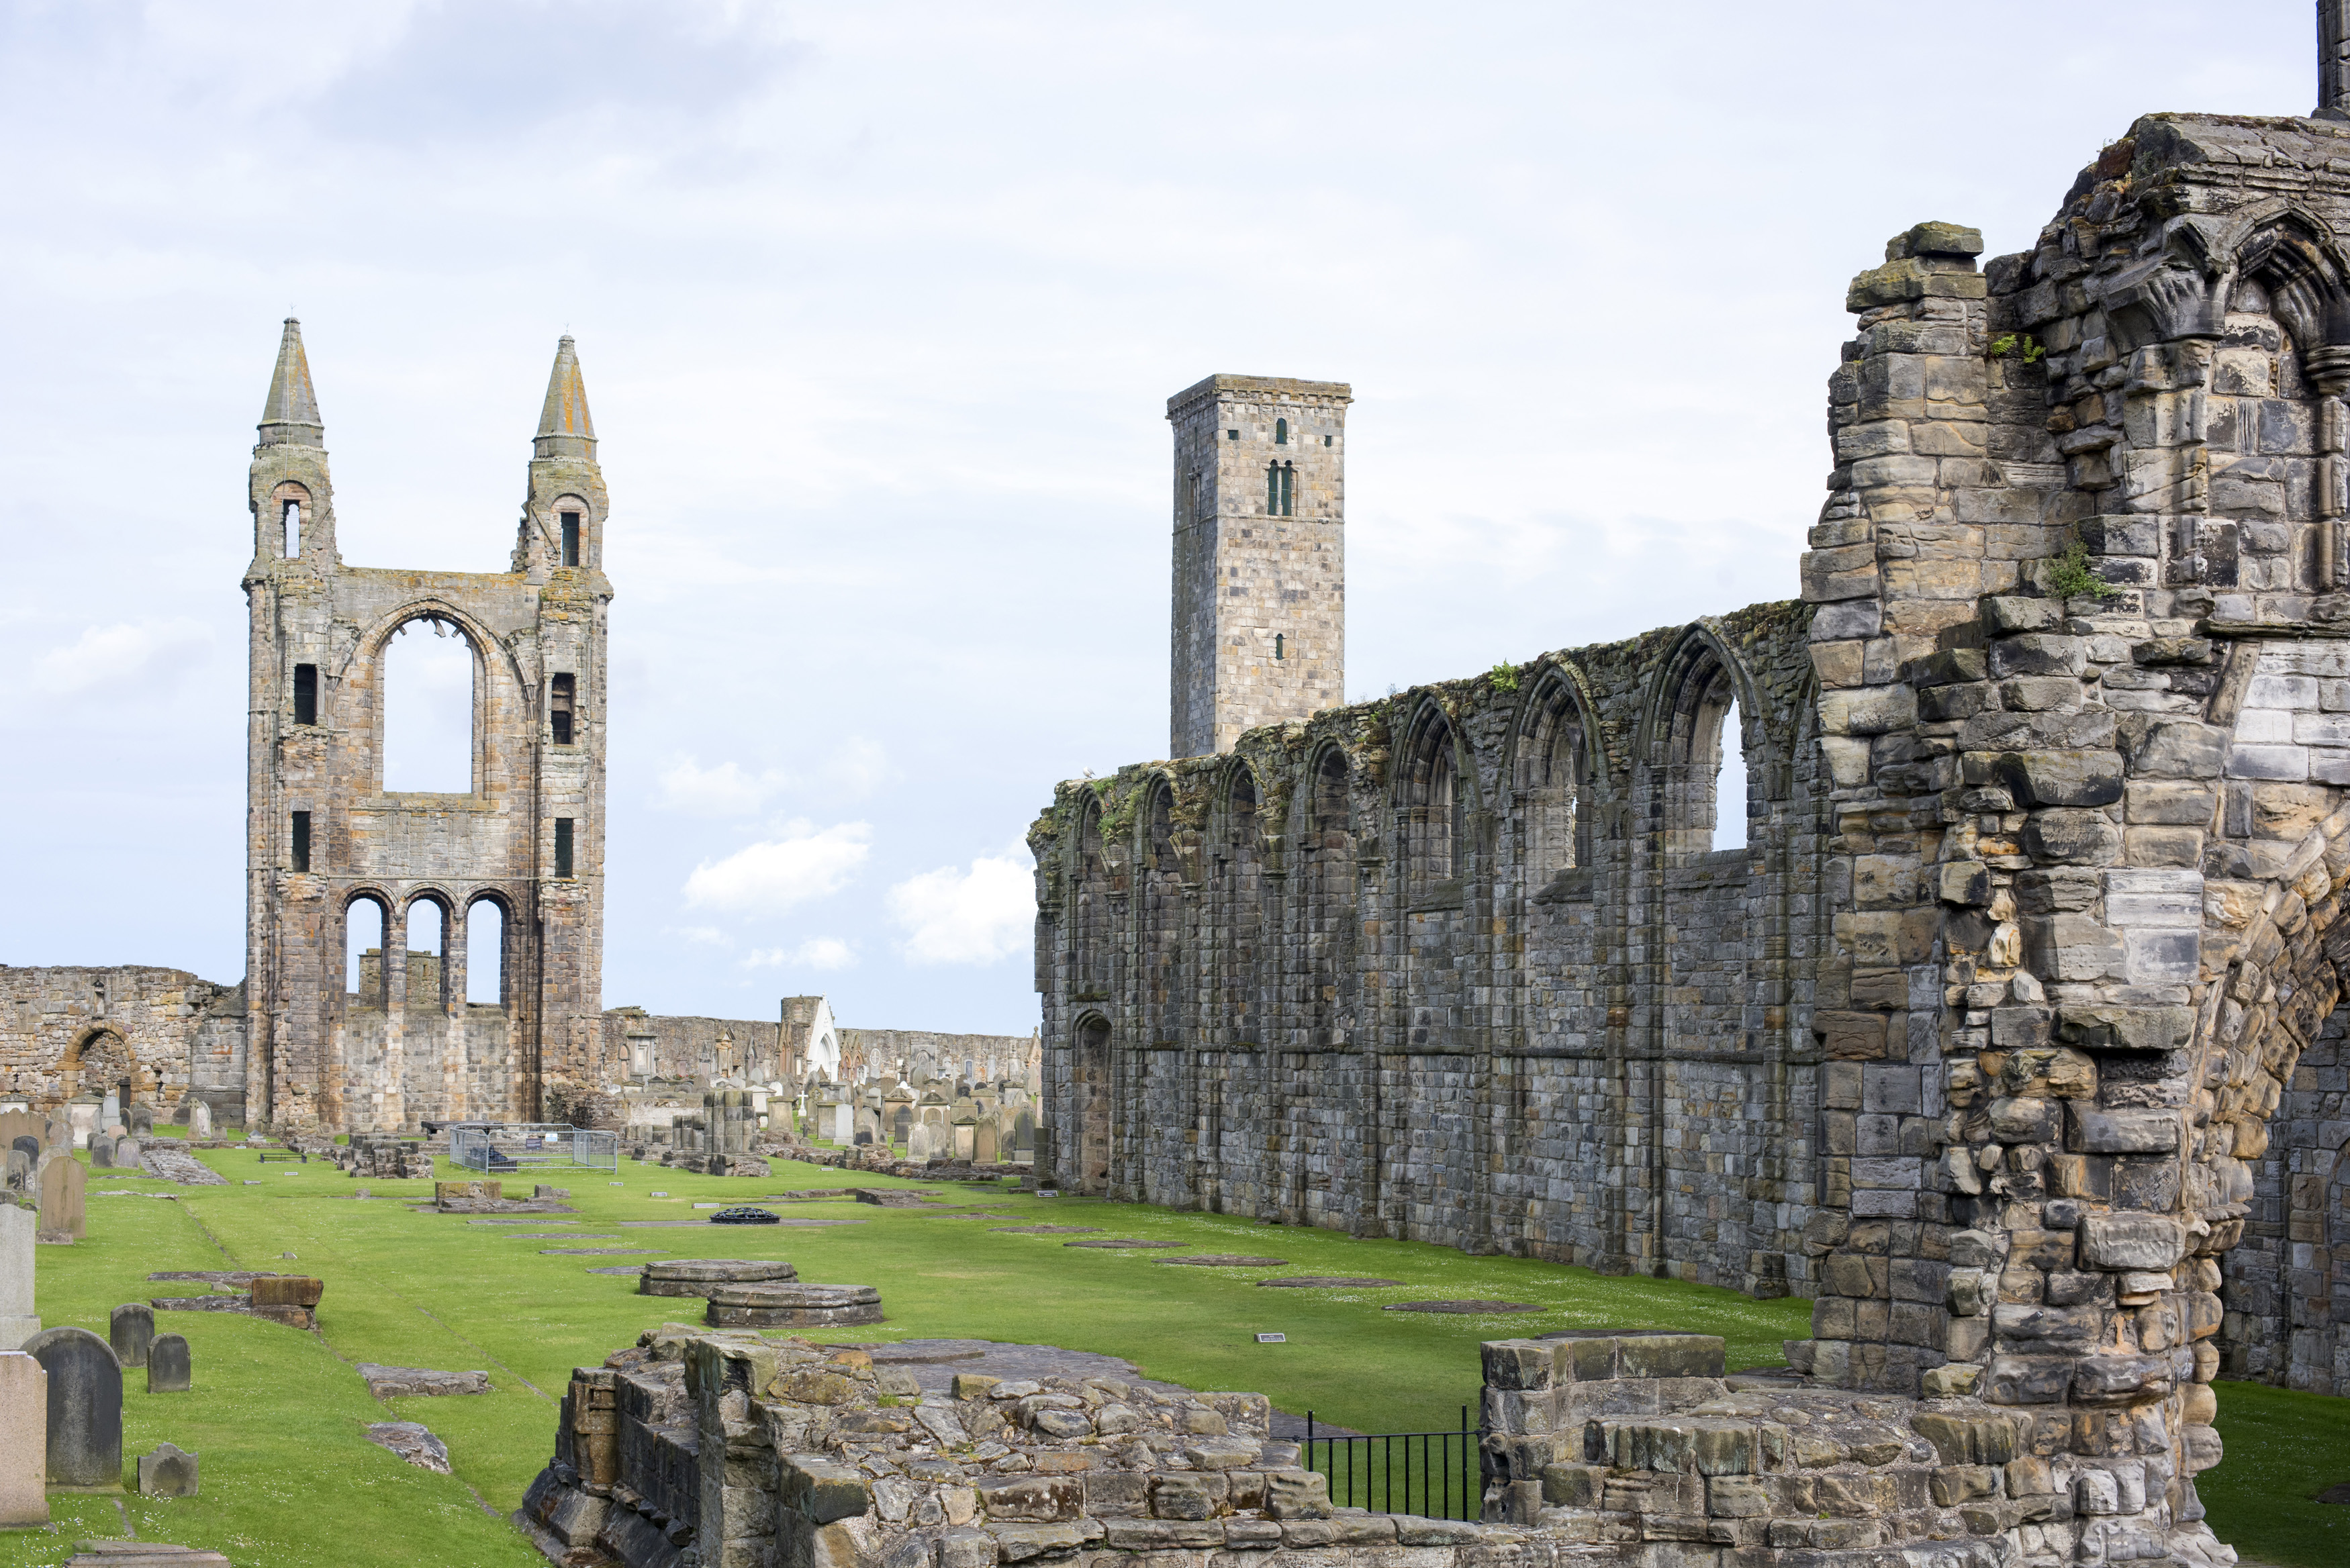 Old ruins with windows and doorway at front of Saint Andrews cathedral in Scotland